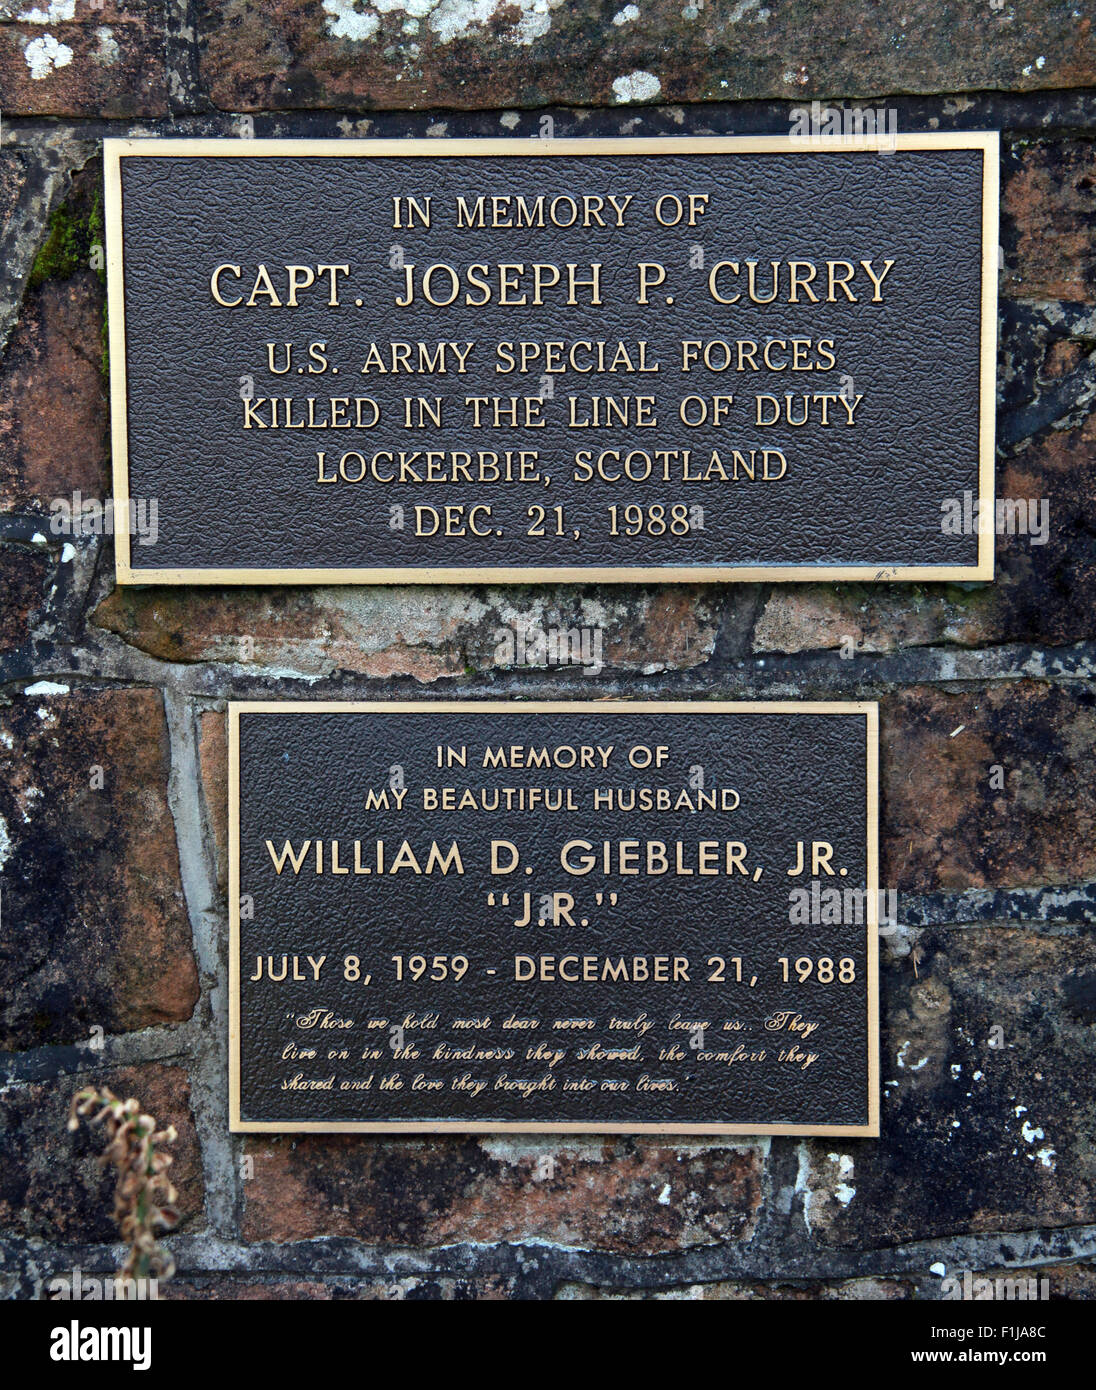 Joseph,P.,Curry,US,Army,Special,Forces,William,D.,Giebler,JR,Lodge,Visitors,Centre,DLVC,Trust,Lockerbie,Memorial,Remembrance,Scotland,Victims,Pan,Am,PanAm,flight,103,bomb,bombing,terrorist,December,1988,attack,crash,dead,site,21/12/1988,270,victims,Scottish,Town,conspiracy,blast,New York,GoTonySmith,Lodge,Visitors,Centre,DLVC,Trust,Lockerbie,Memorial,Scotland,Victims,Pan,Am,PanAm,flight,103,bomb,bombing,terrorist,December,1988,attack,crash,dead,site,21/12/1988,270,victims,Scottish,Town,conspiracy,blast,Tundergarth,Room,garden,of,Dryfesdale,Cemetery,news,Cultural,understanding,remembering,innocent,transatlantic,Frankfurt,Detroit,Libyan,Libya,Colonel Muammar Gaddafi,civil,case,compensation,terrorism,PA103,30,30years,years,Syracuse,University,SU,family,collections,Story,Archive,Archives,40,35,Timeline,saga,disaster,air,Scholars,program,programs,remembrance,Clipper Maid of the Seas,N739PA,Boeing,727,plane,aircraft,Scotland,UK,United Kingdom,GB,Great Britain,resting,place,Buy Pictures of,Buy Images Of,New York,al megrahi,30 Years